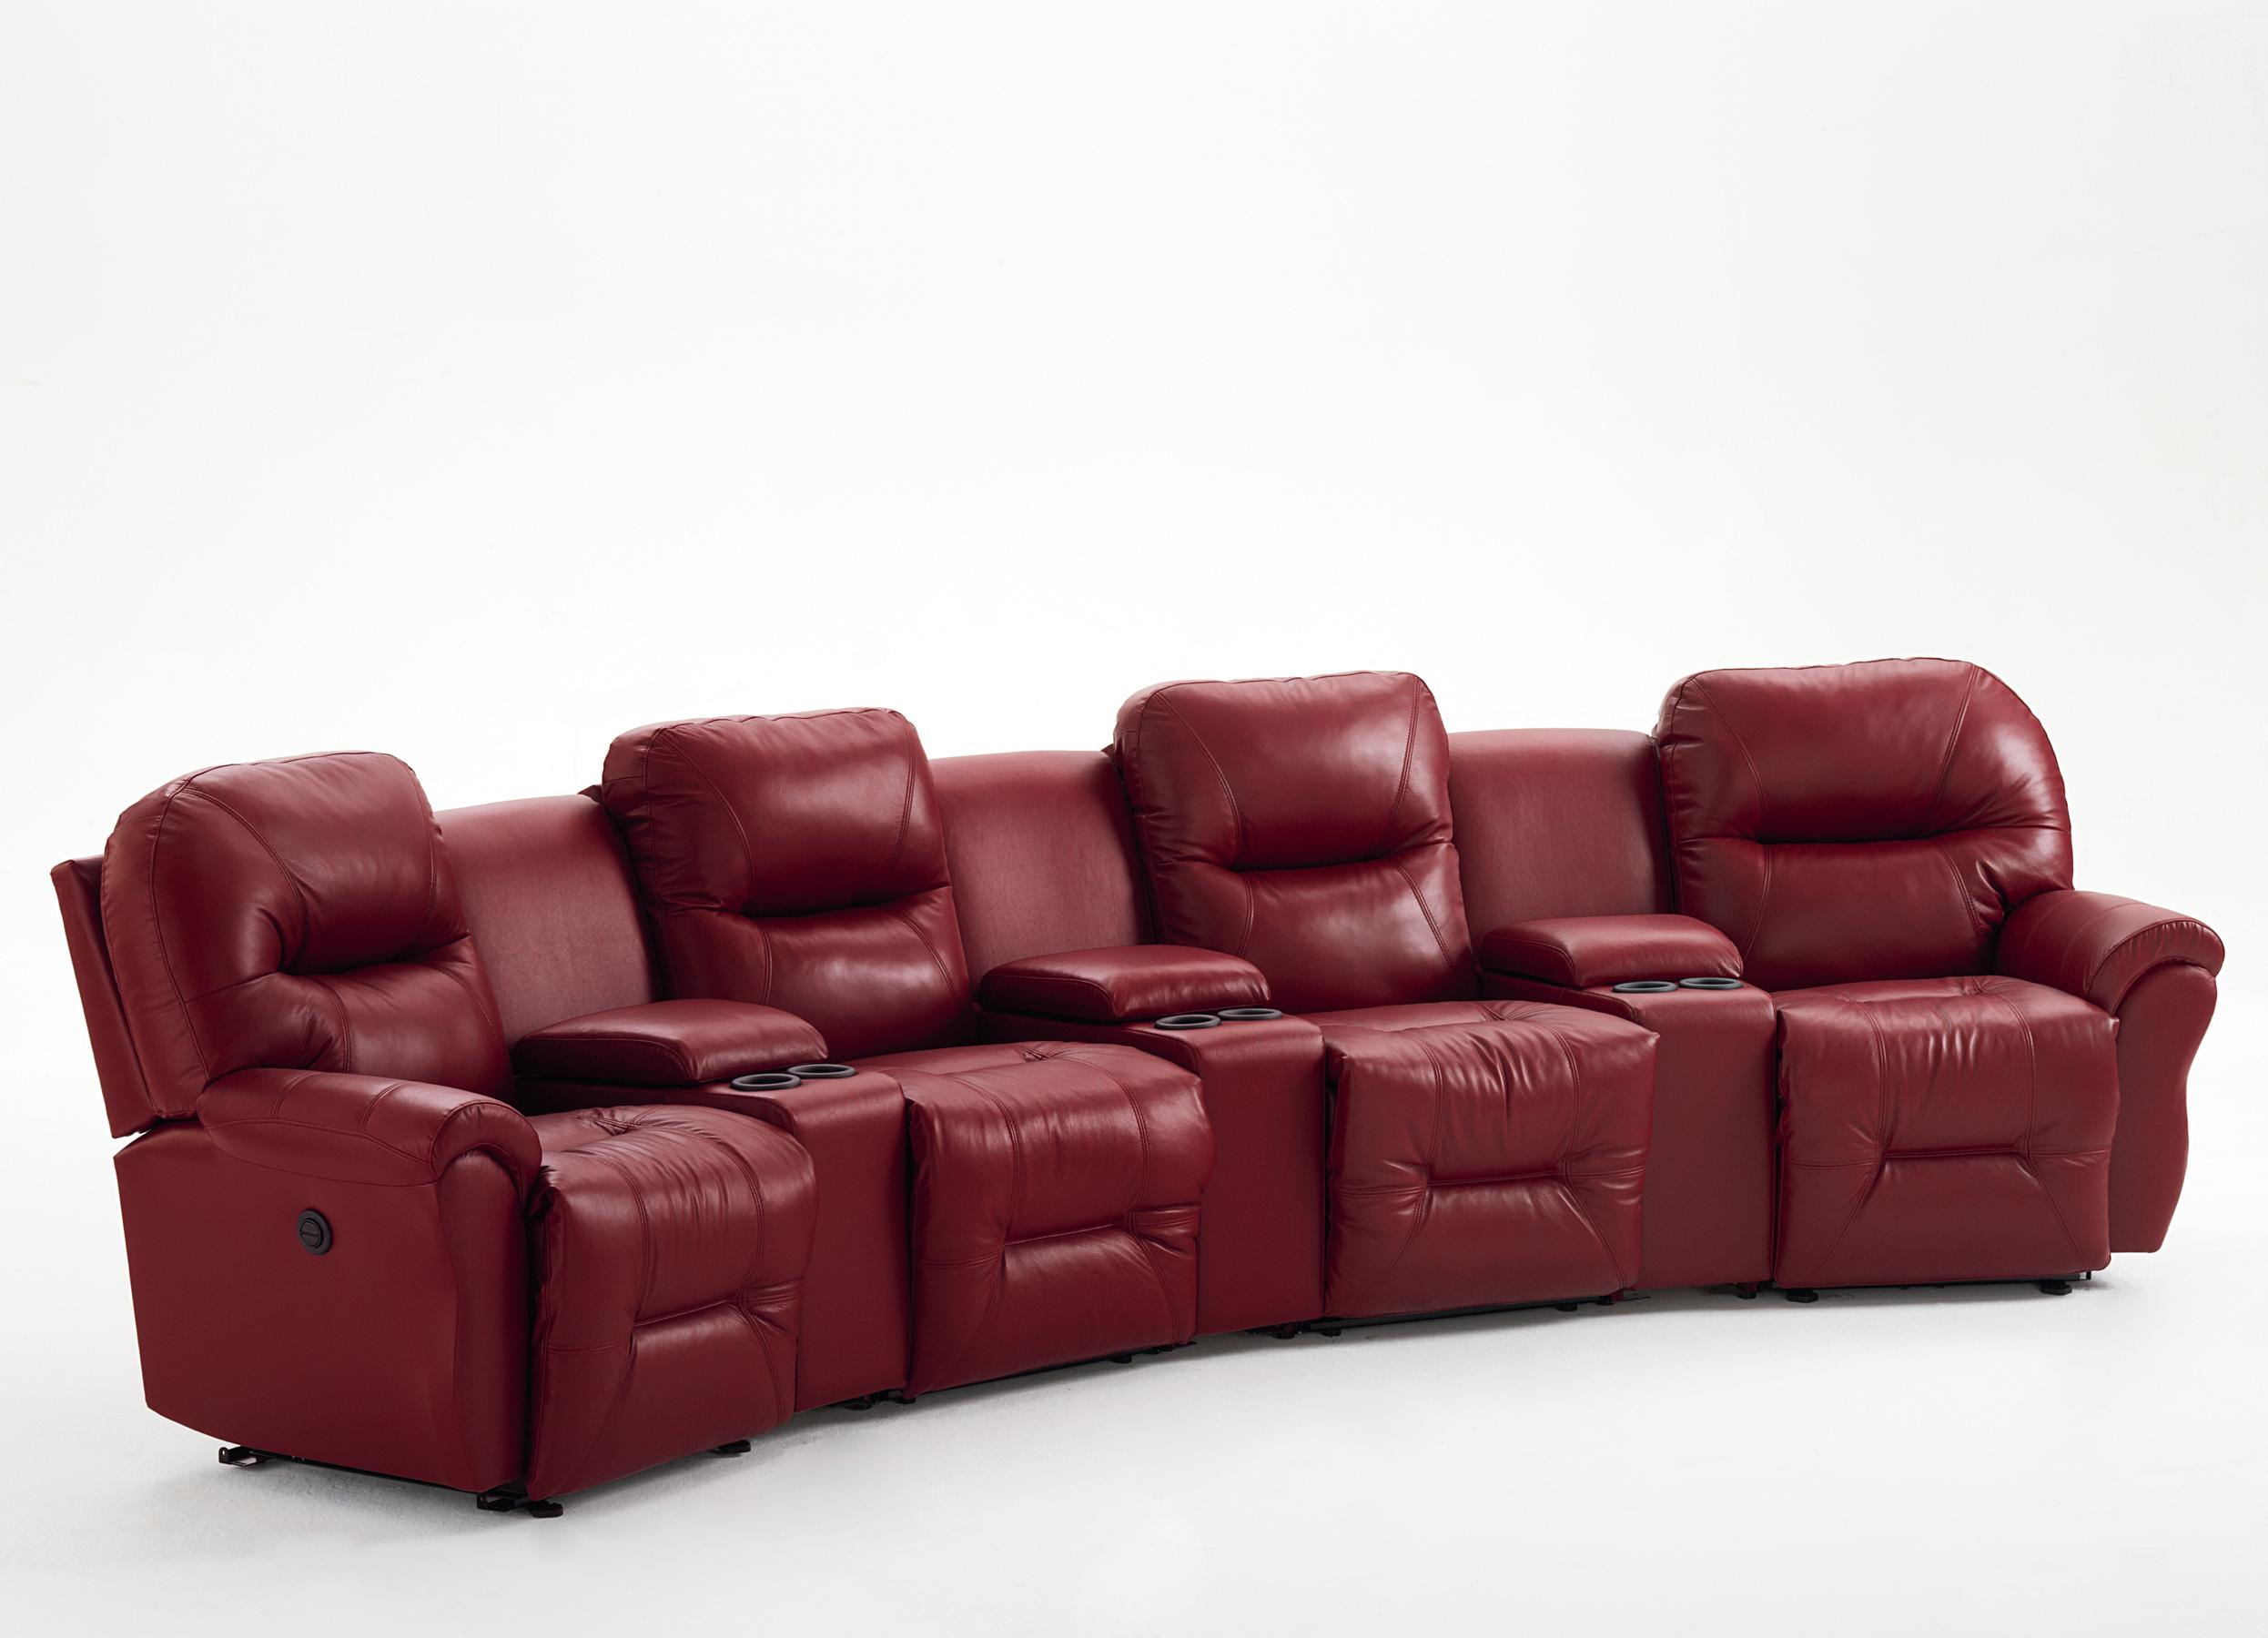 4-Seater Power Reclining Home Theater Group : home theater power recliner - islam-shia.org